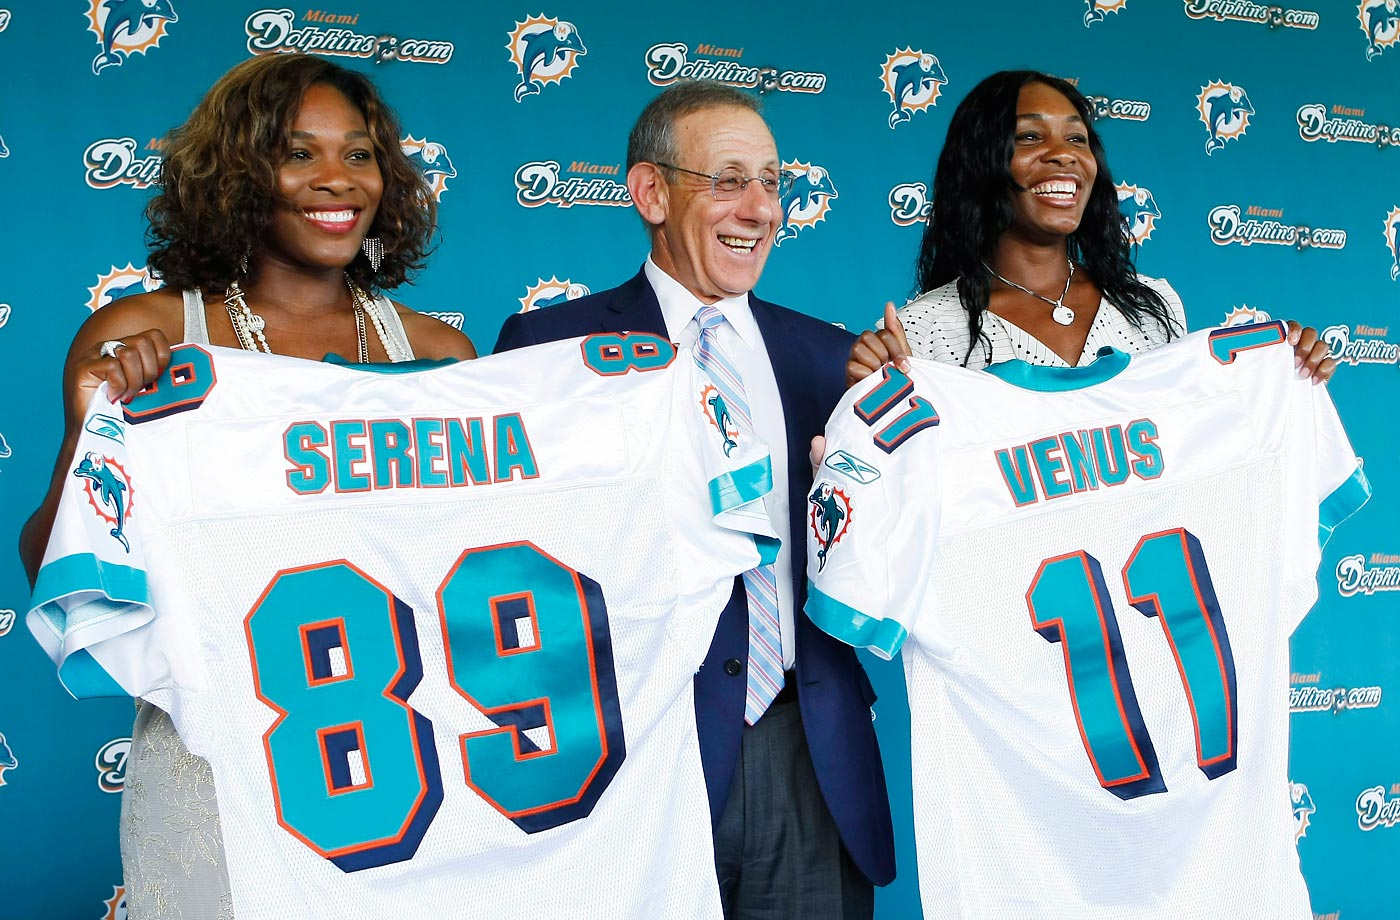 Miami Dolphins owner Stephen Ross with Serena and Venus after it was announced they had become minority owners of the NFL football team.